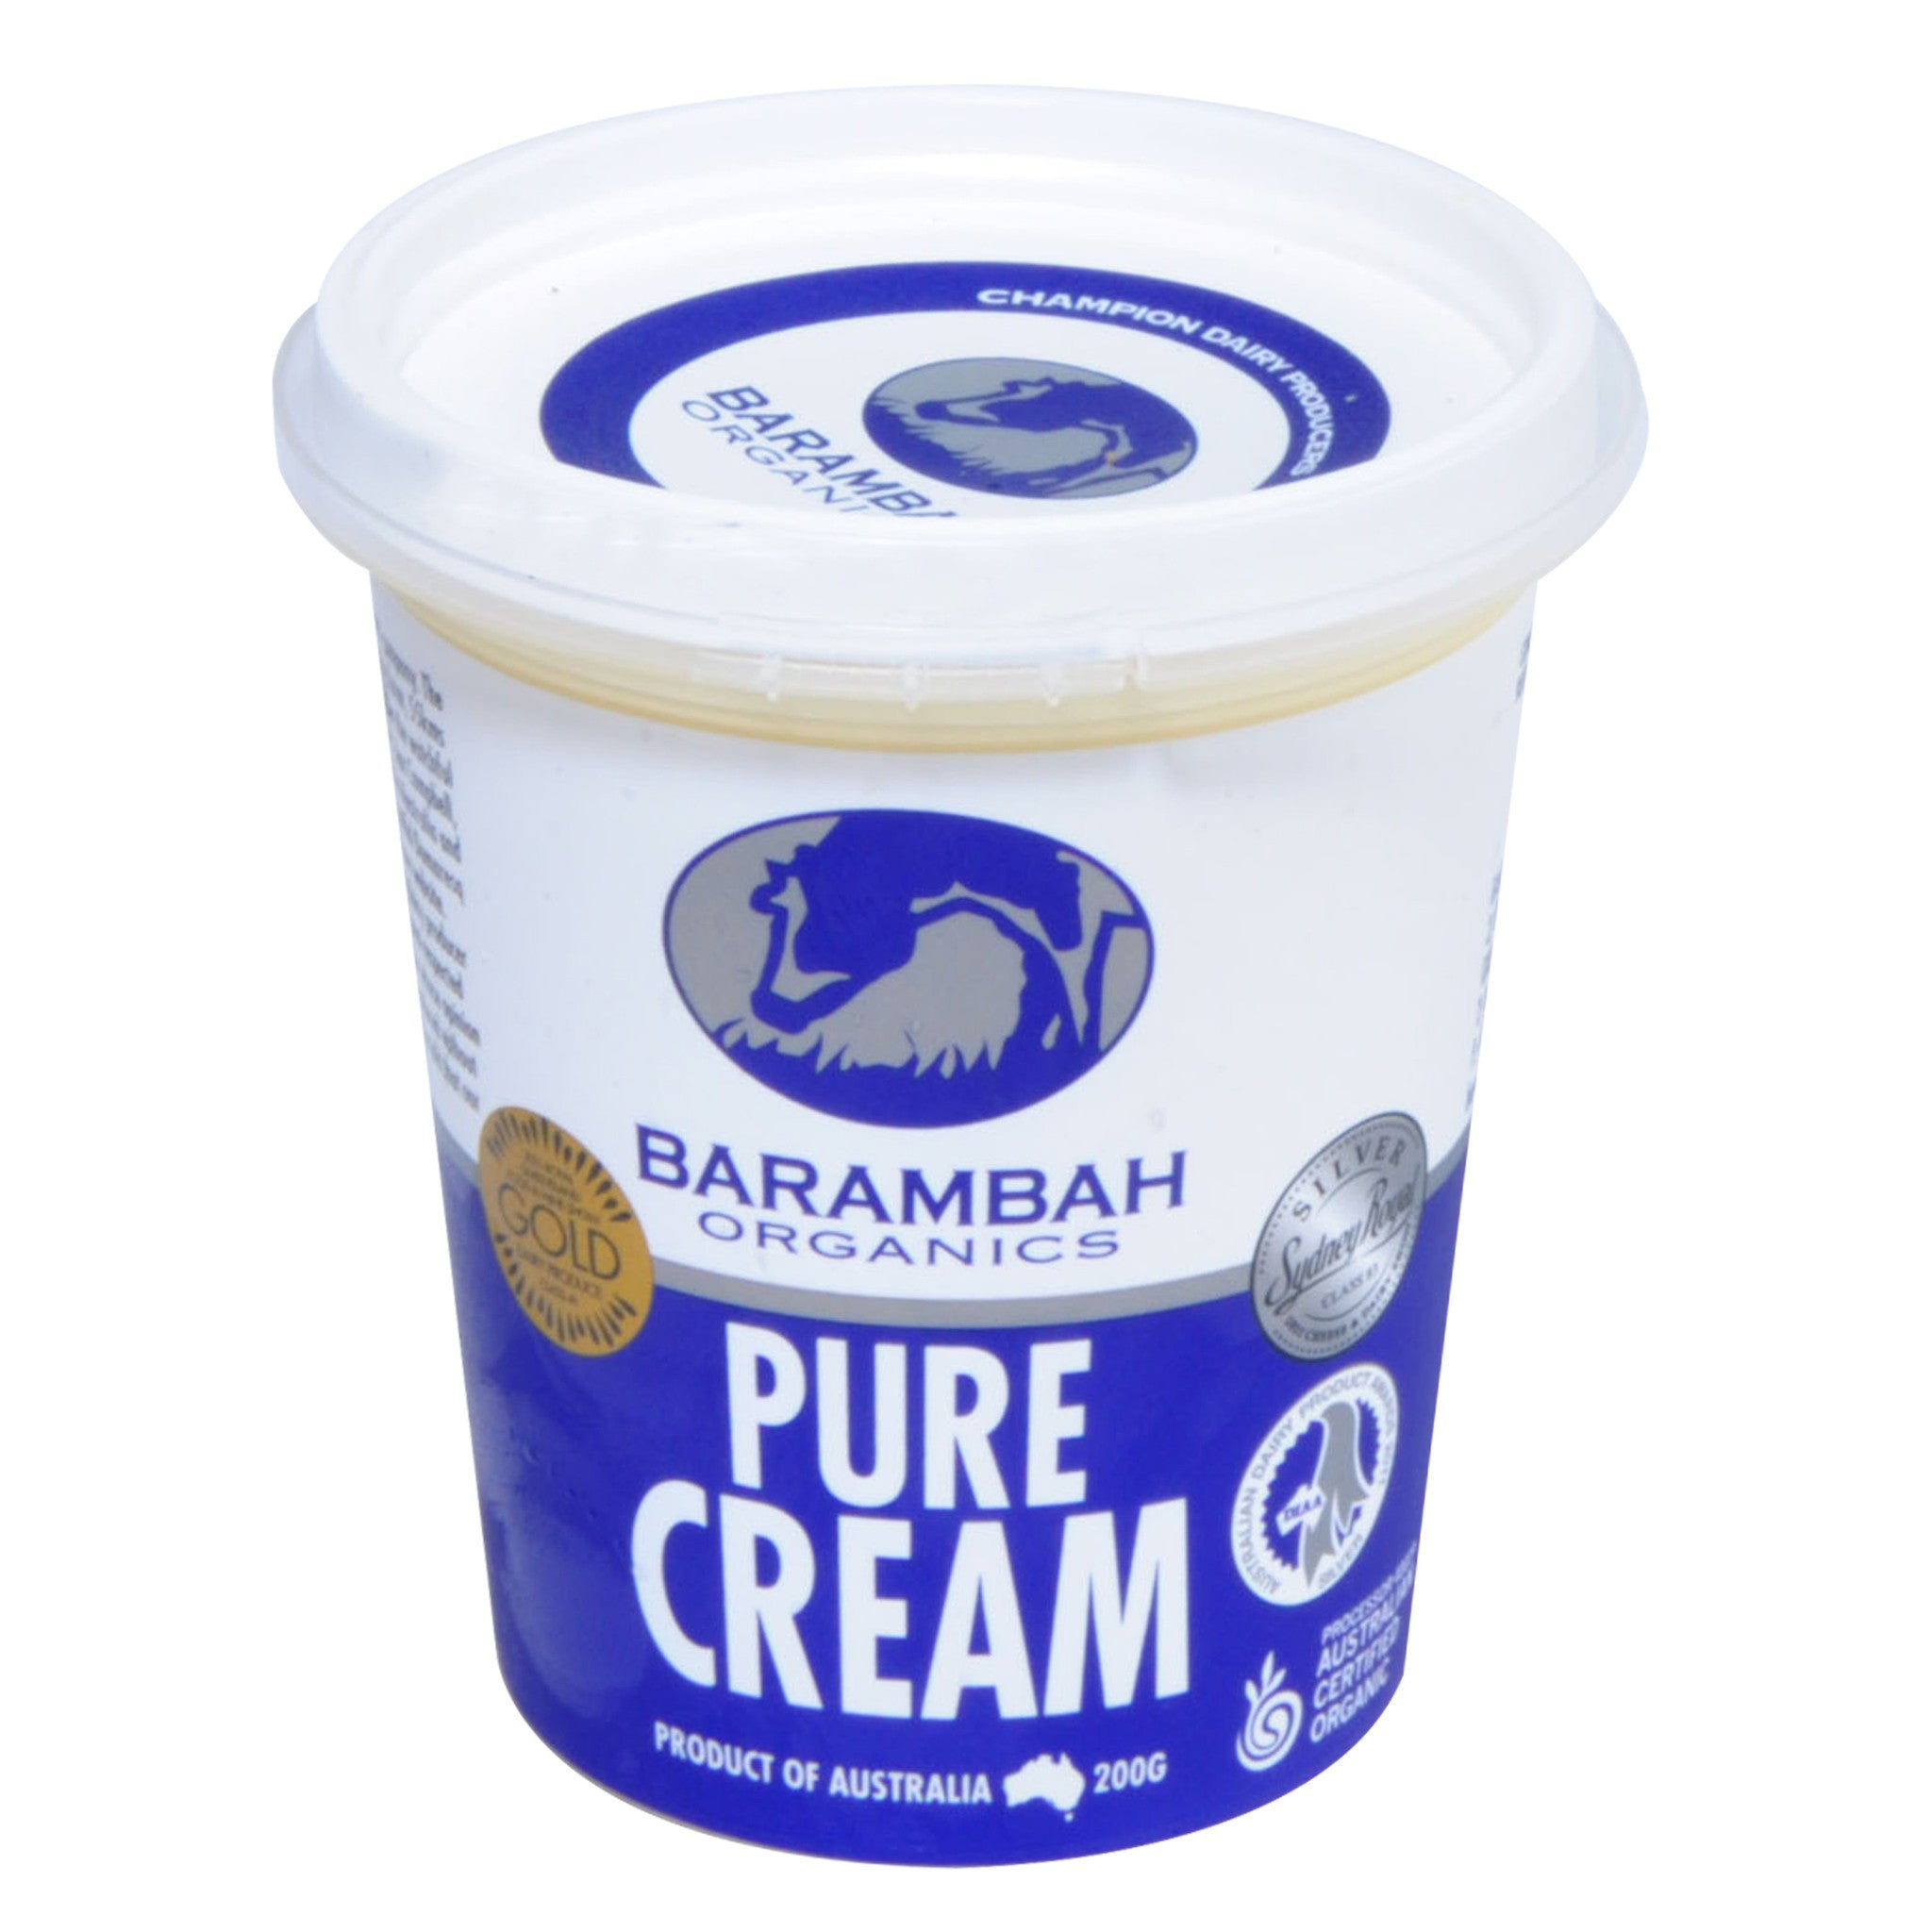 Pure Cream (200ml) Organic Barambah